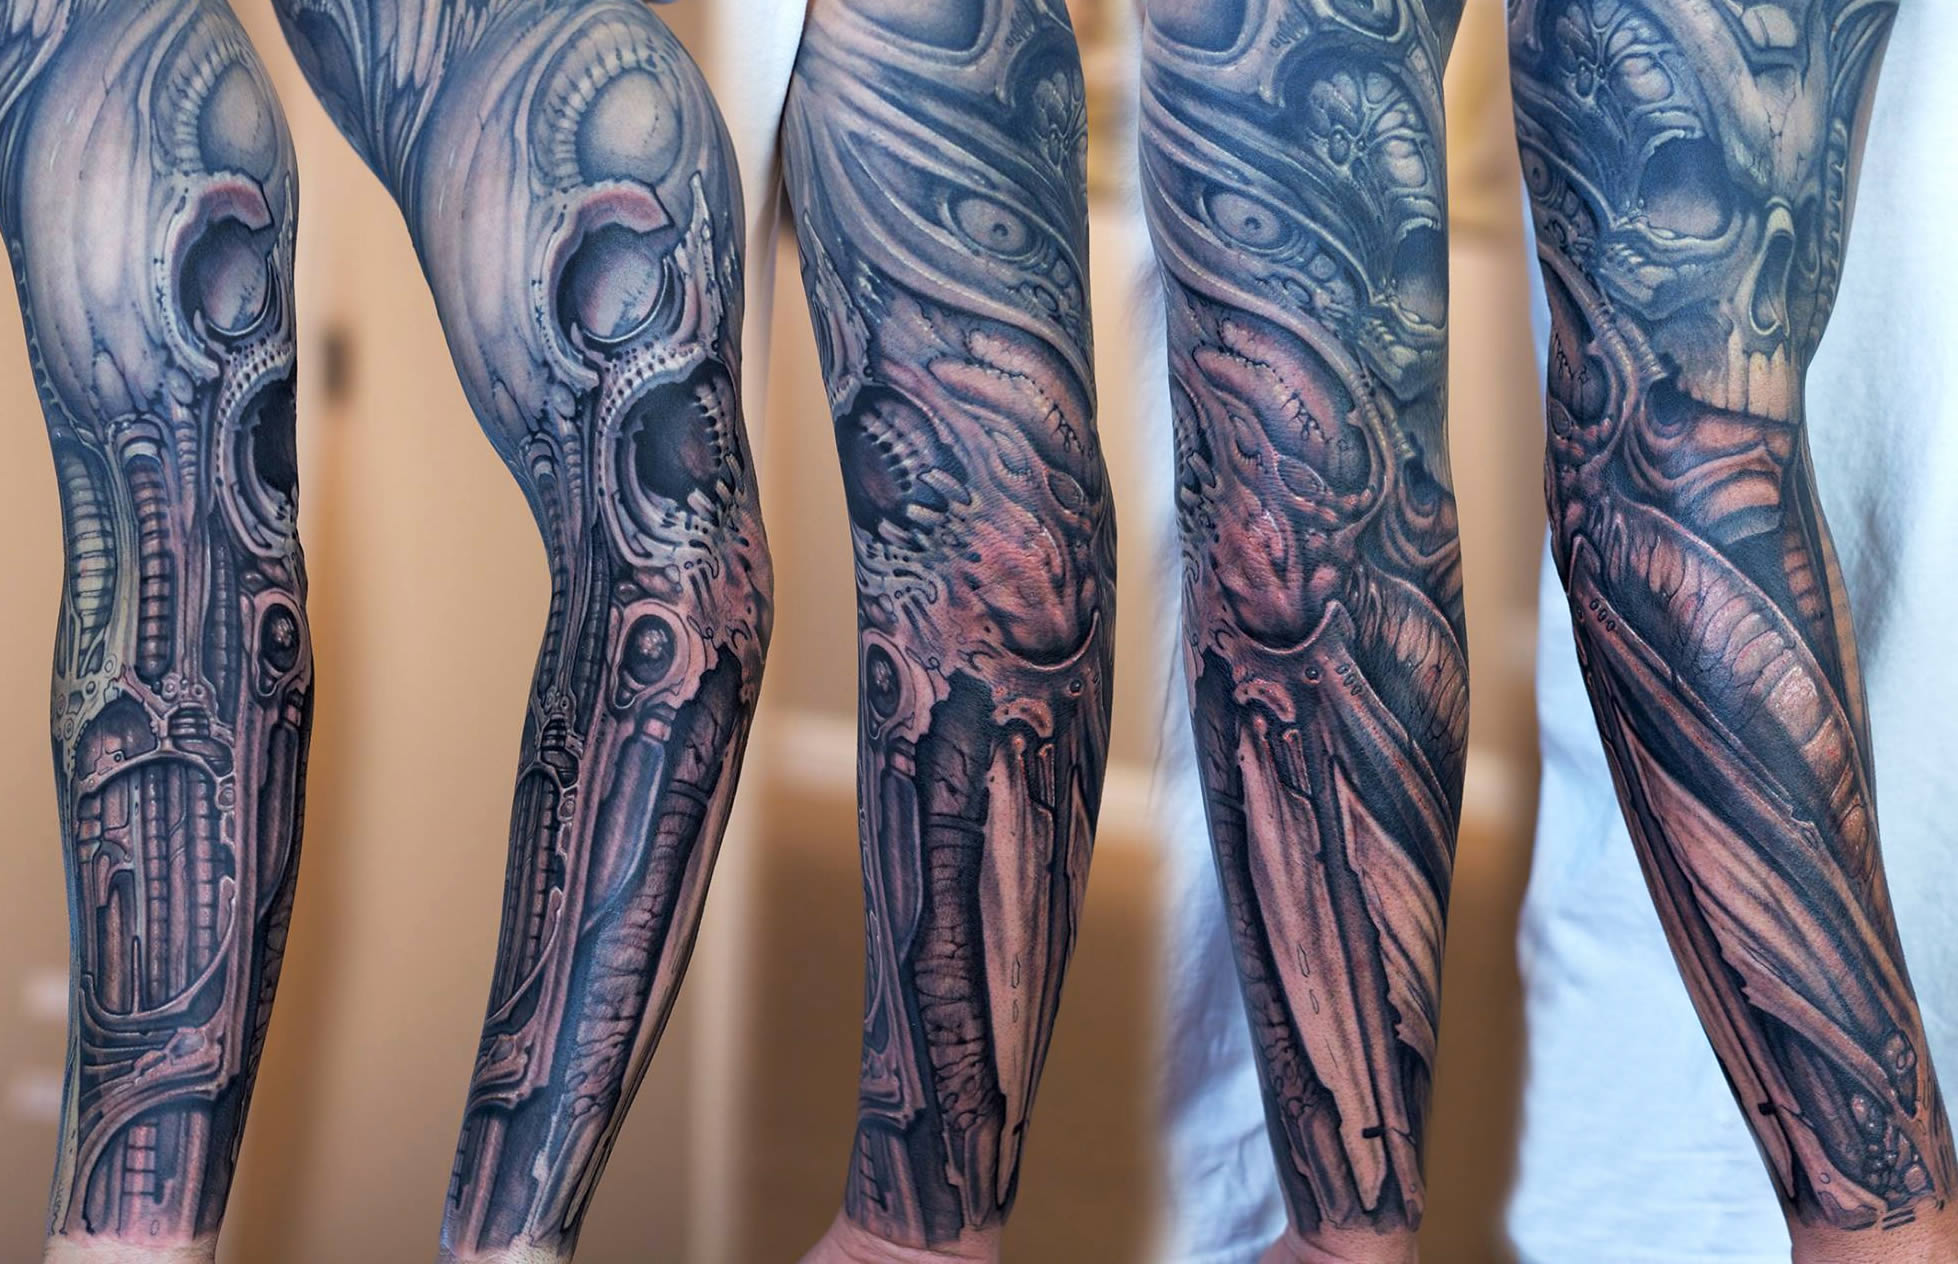 b5f276b81142e colorful surreal biomechanical tattoo on leg by paco dietz Biomech tattoo,  skull, giger style, by paco dietz